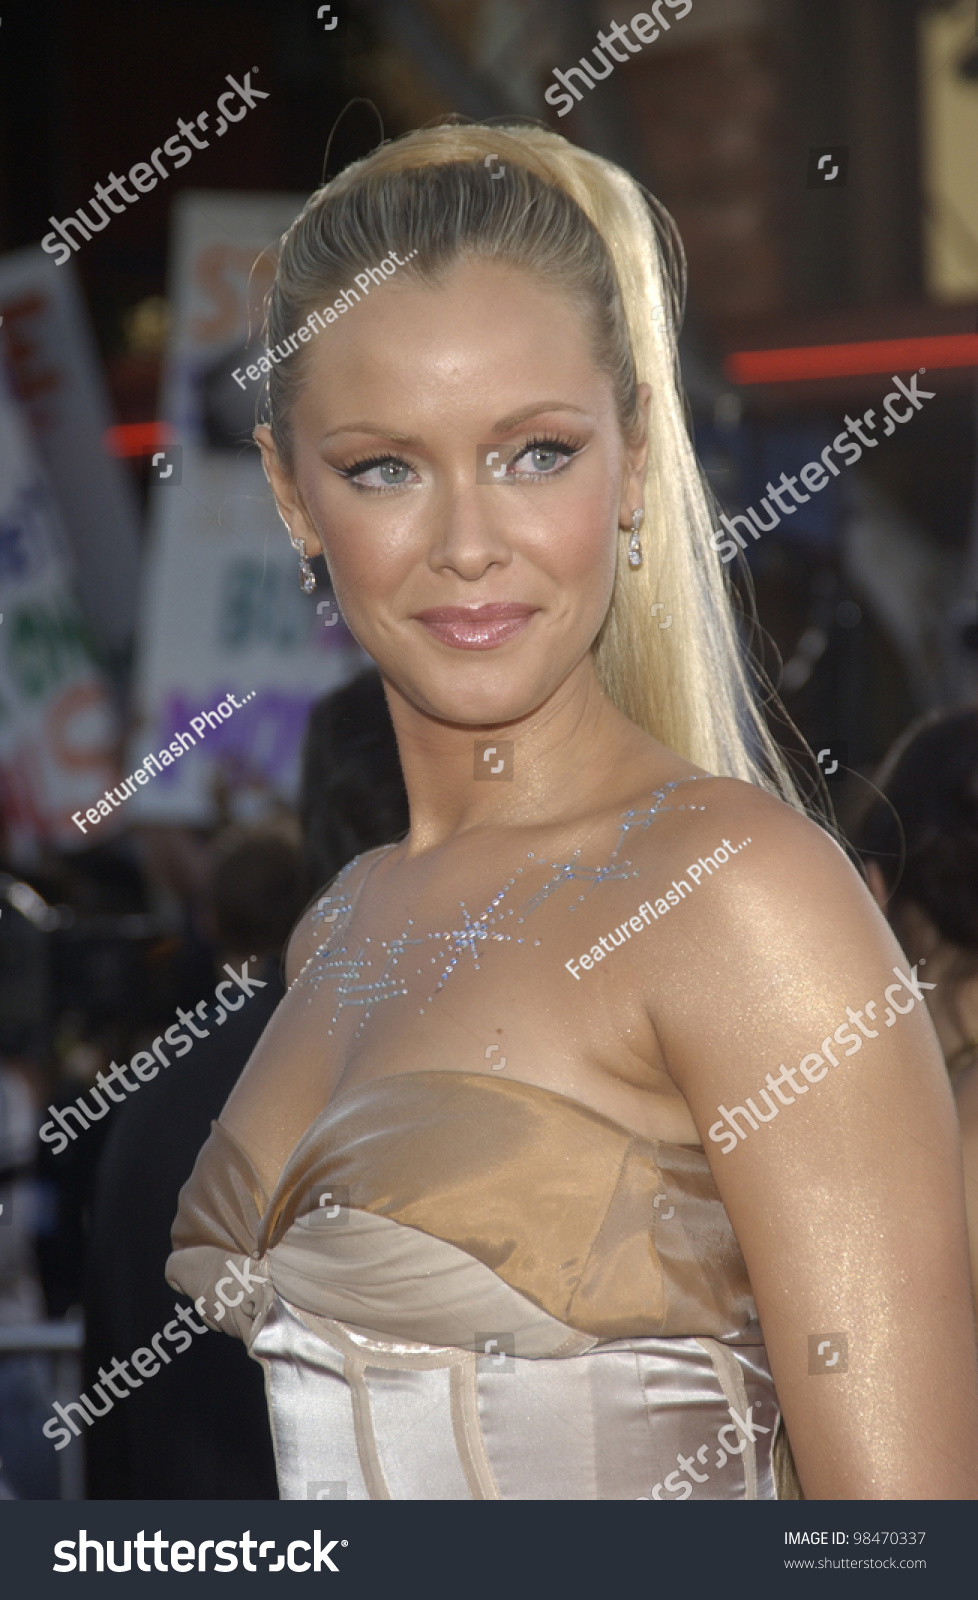 actress kristanna loken world premiere her stock photo (100% legal